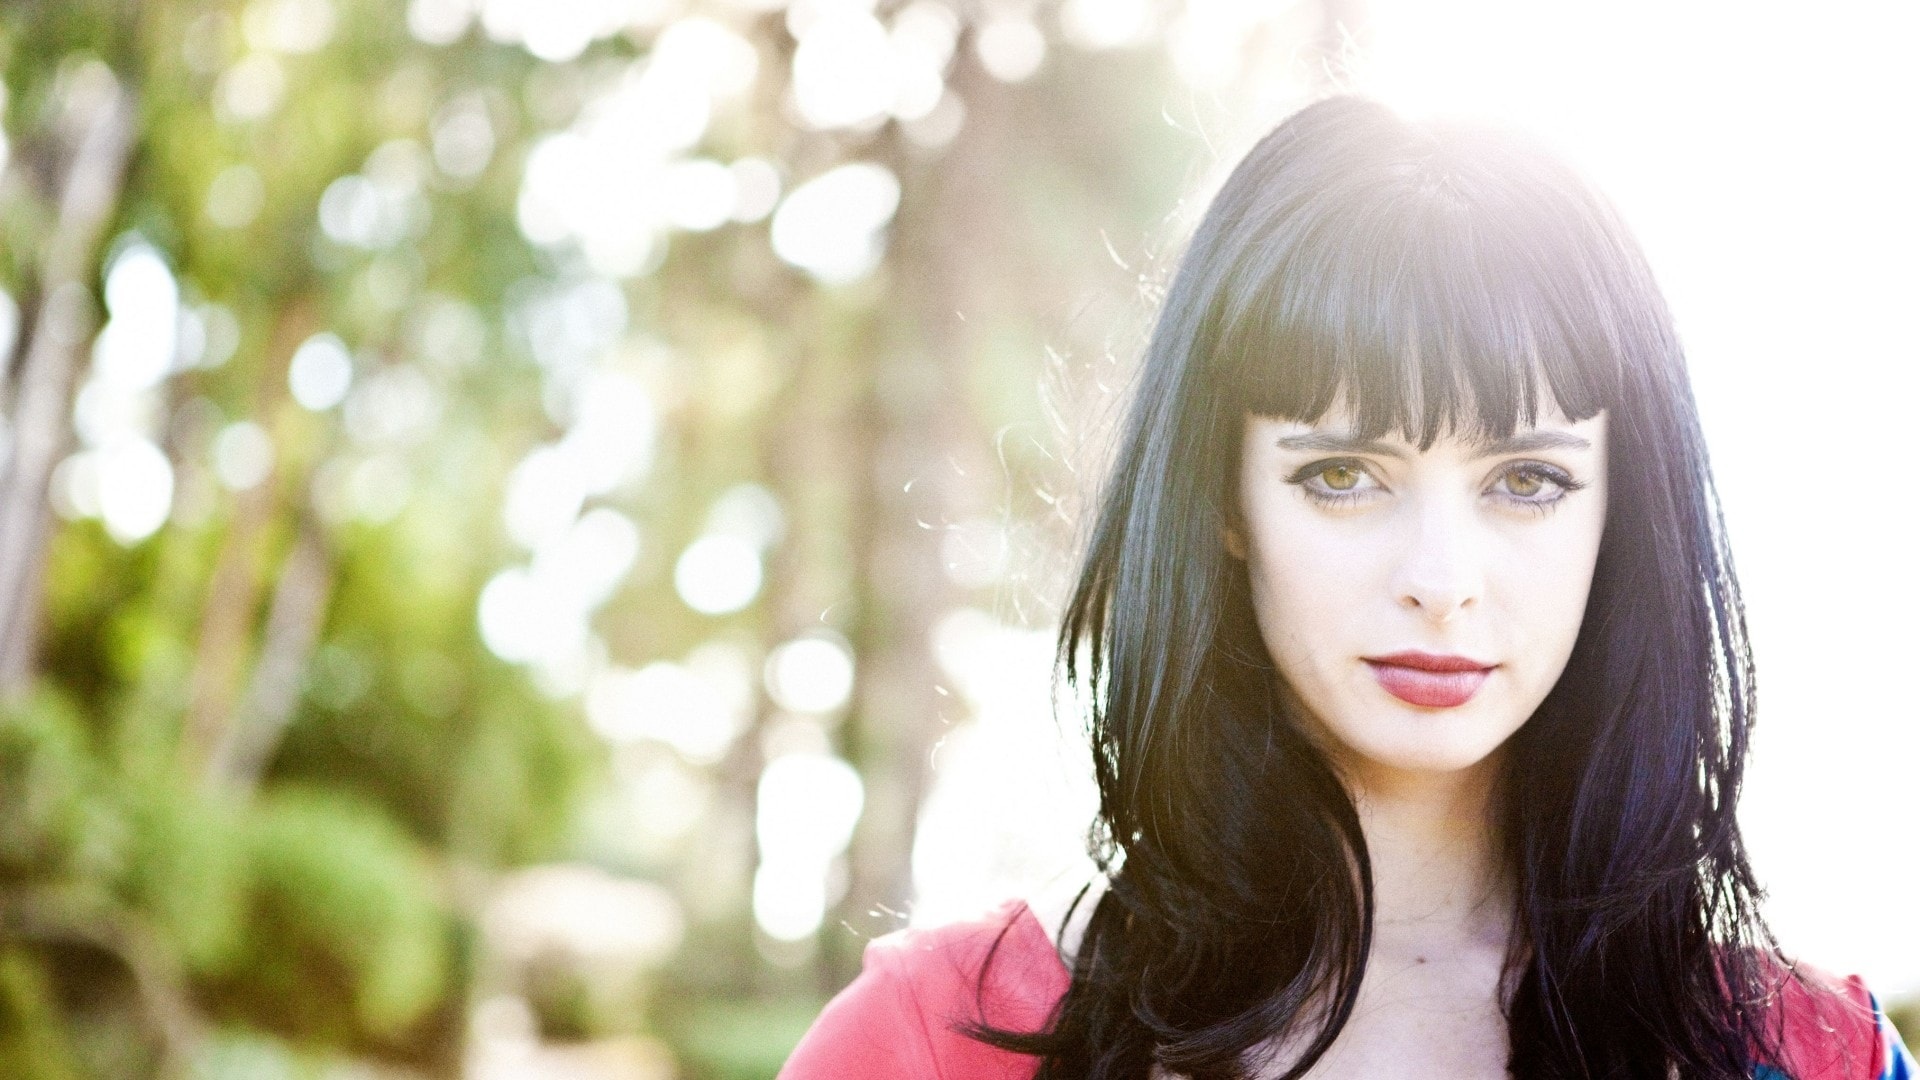 Krysten Ritter Widescreen for desktop